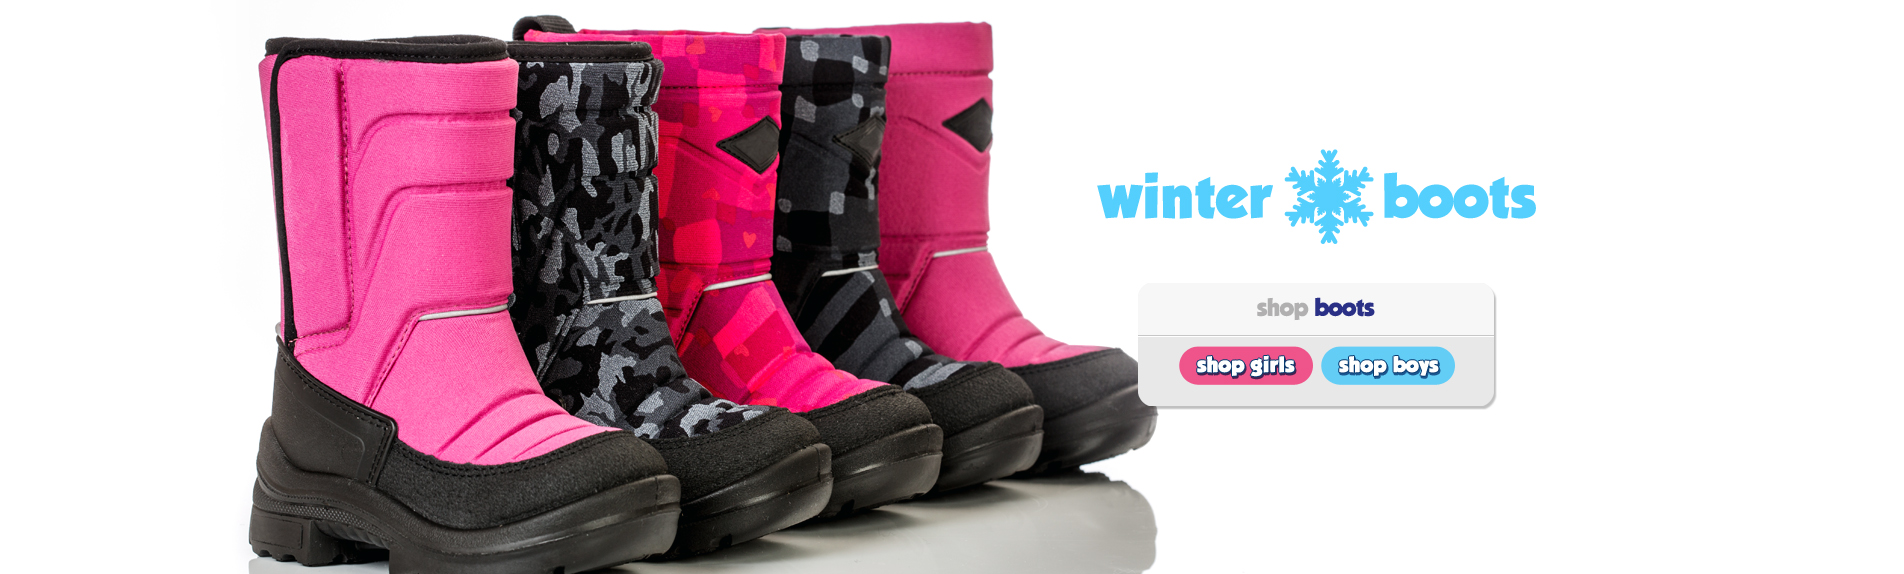 Shop Boys and Girls Winter Boots